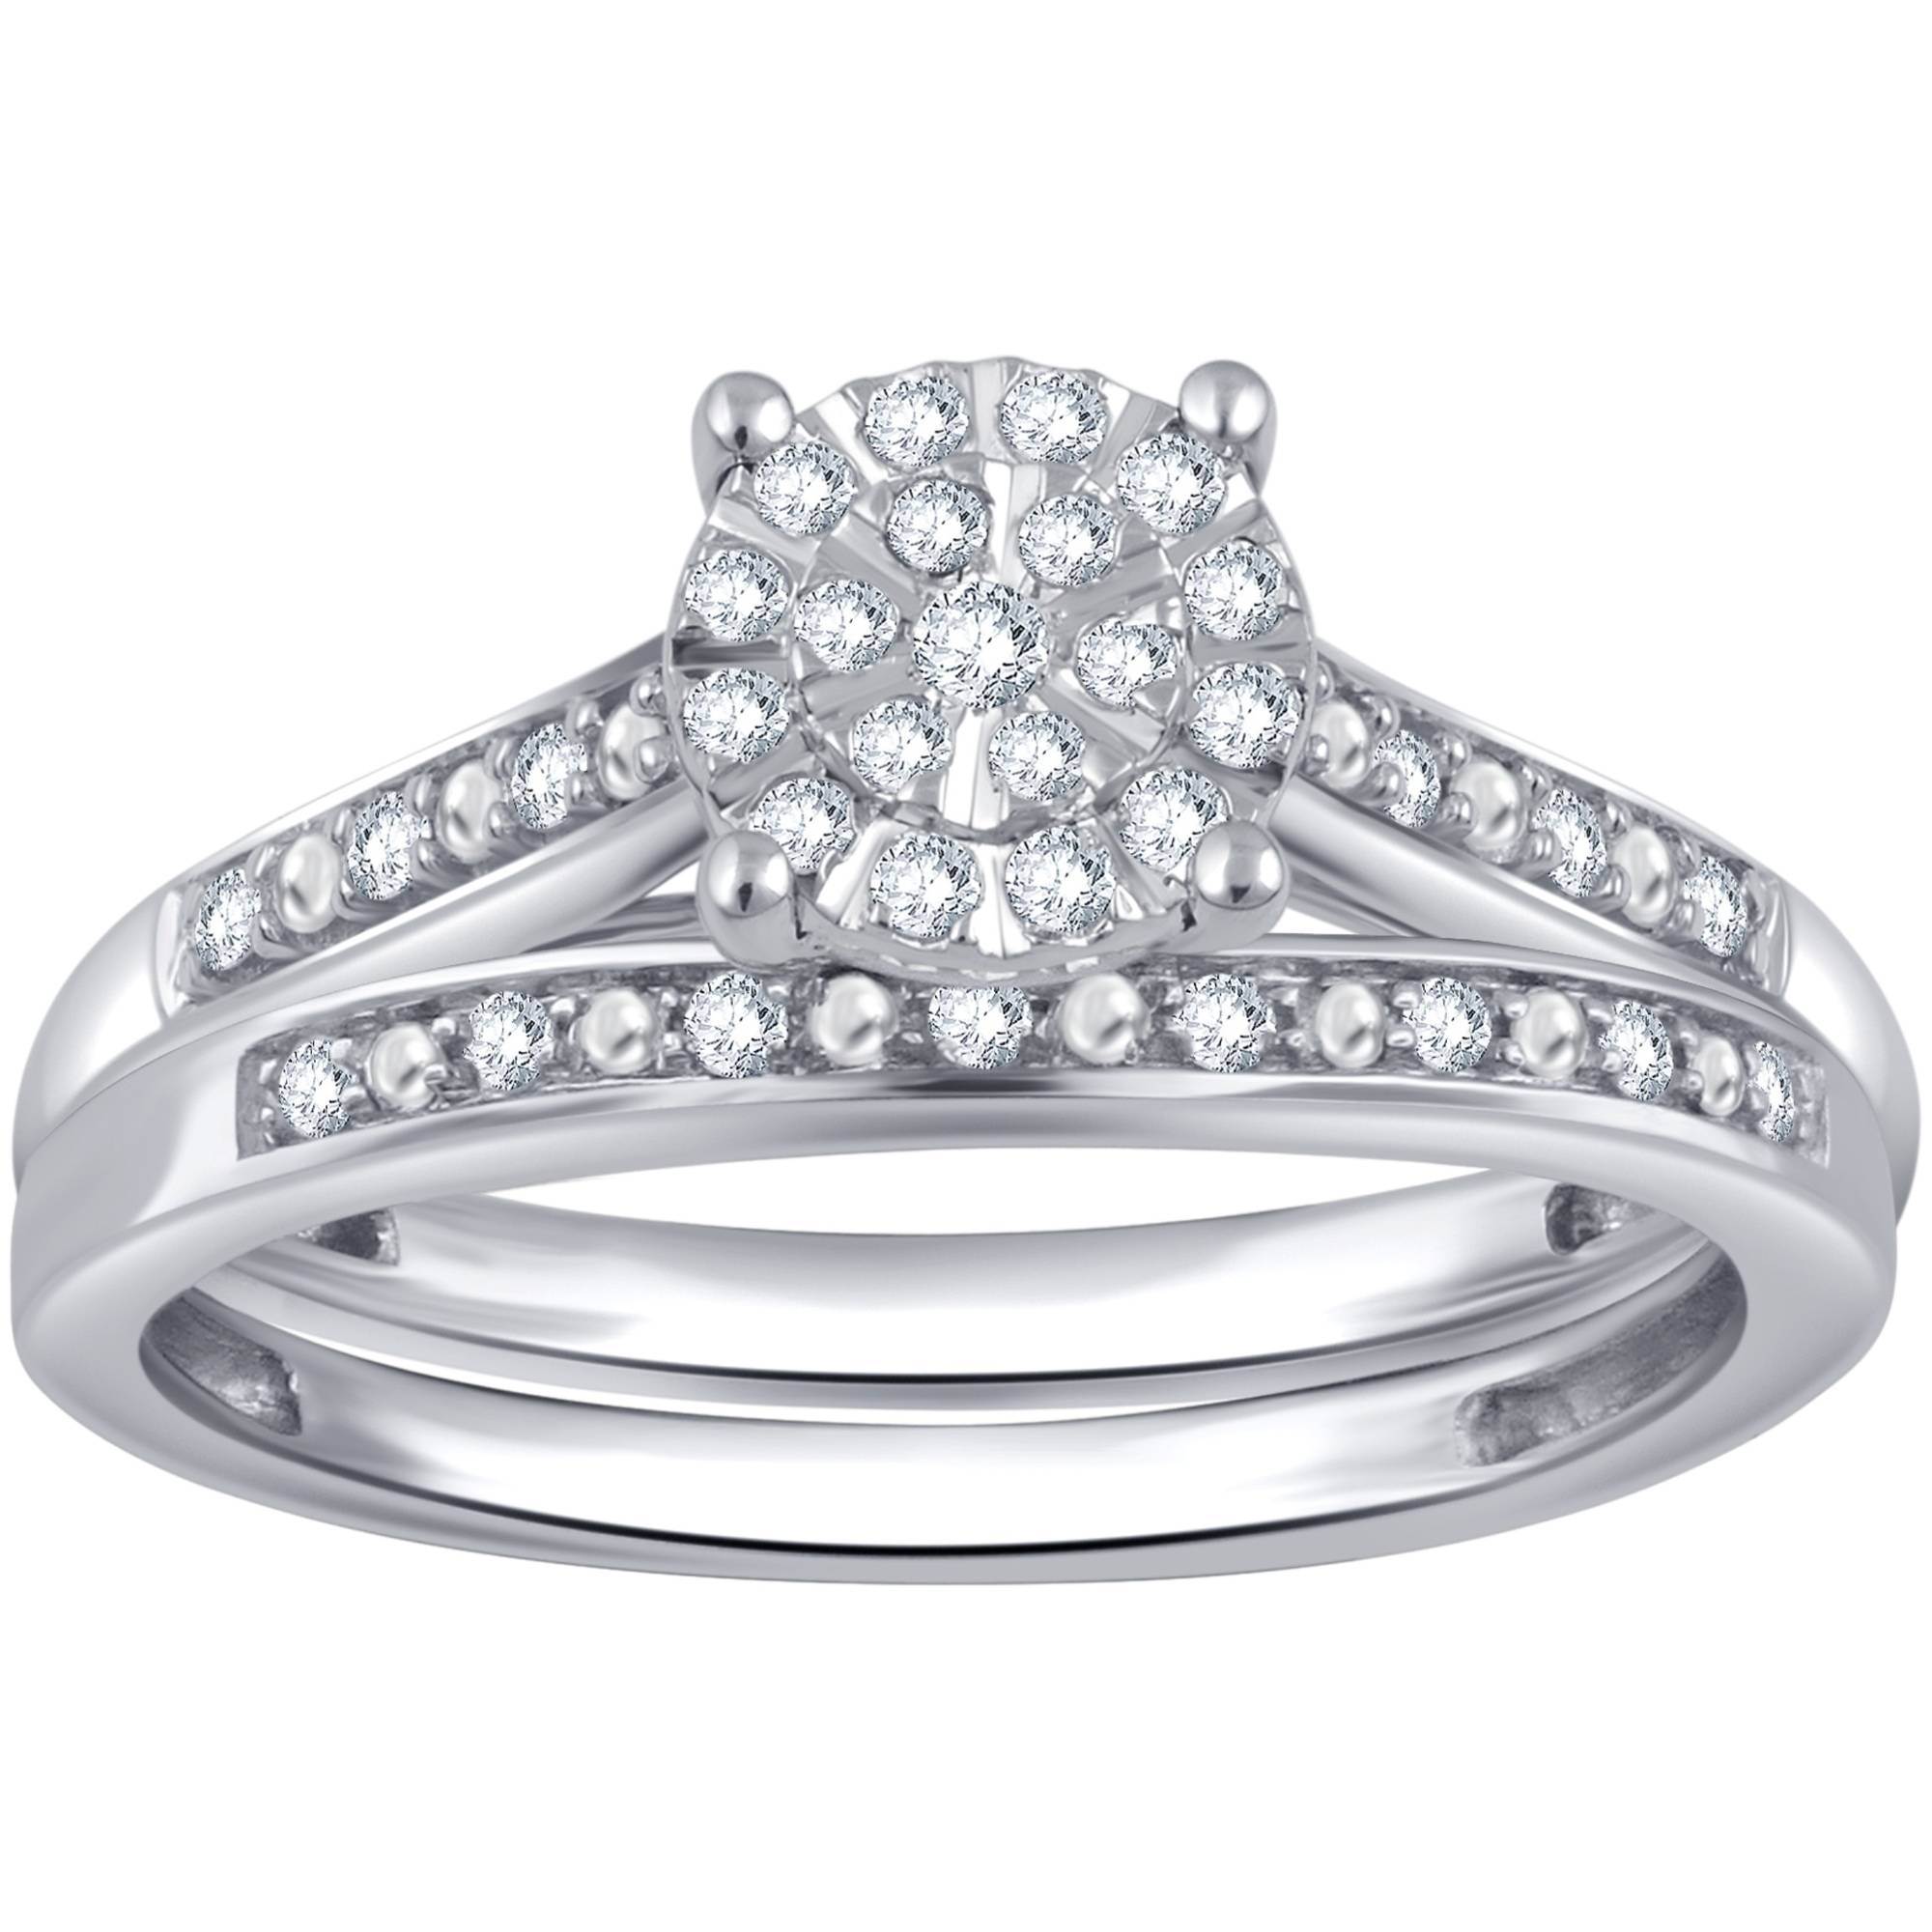 modern engagement bride ring full of patsveg page com size rings on wedding also